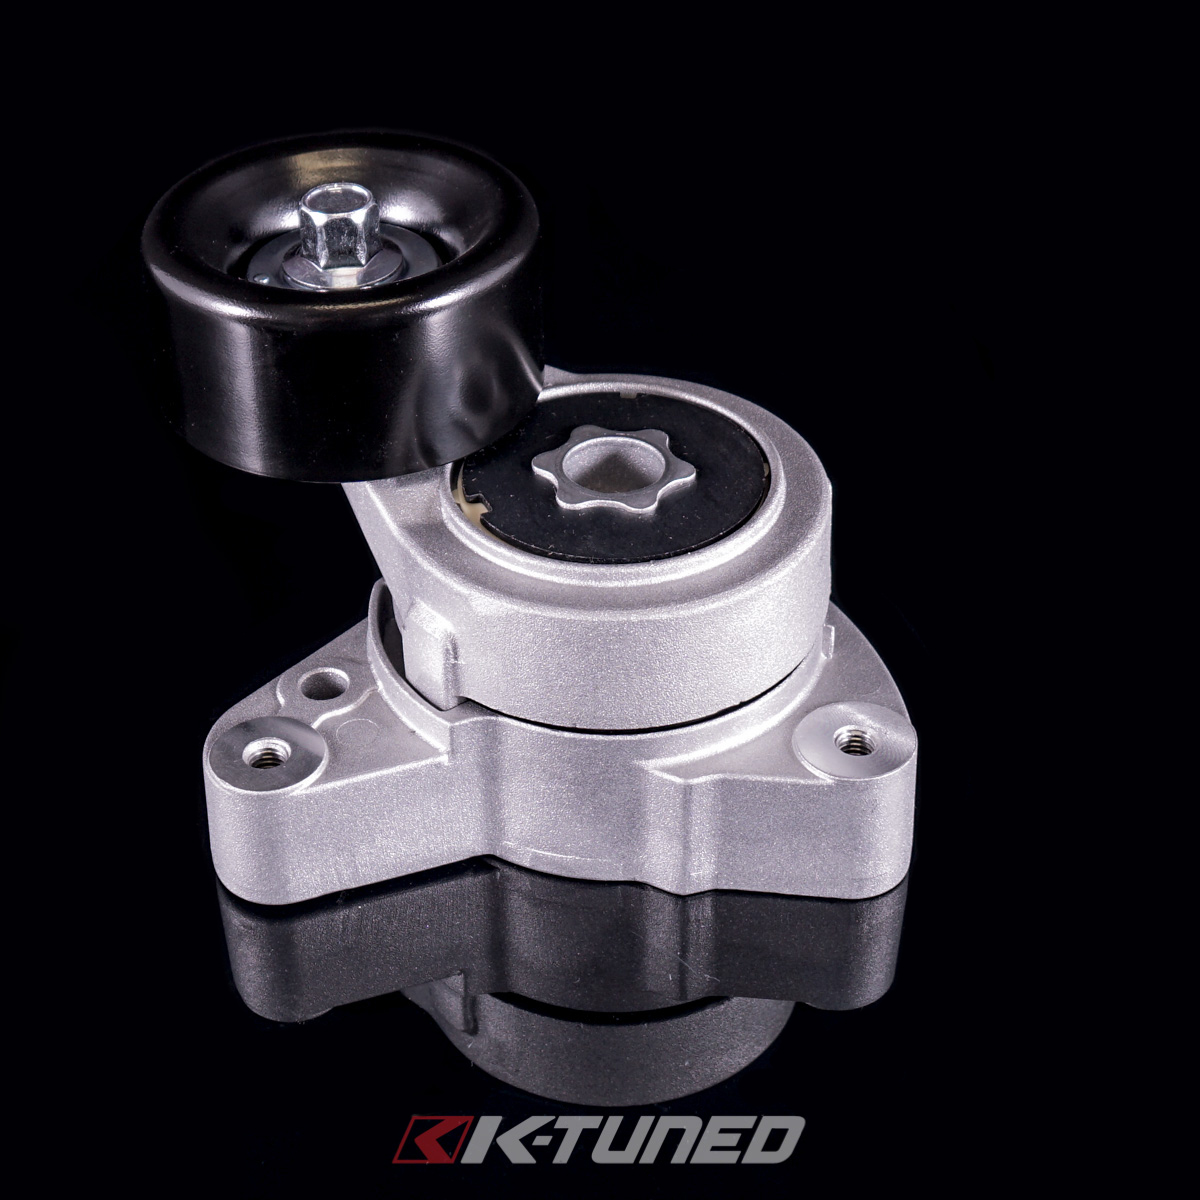 K-Tuned Auto Tensioner